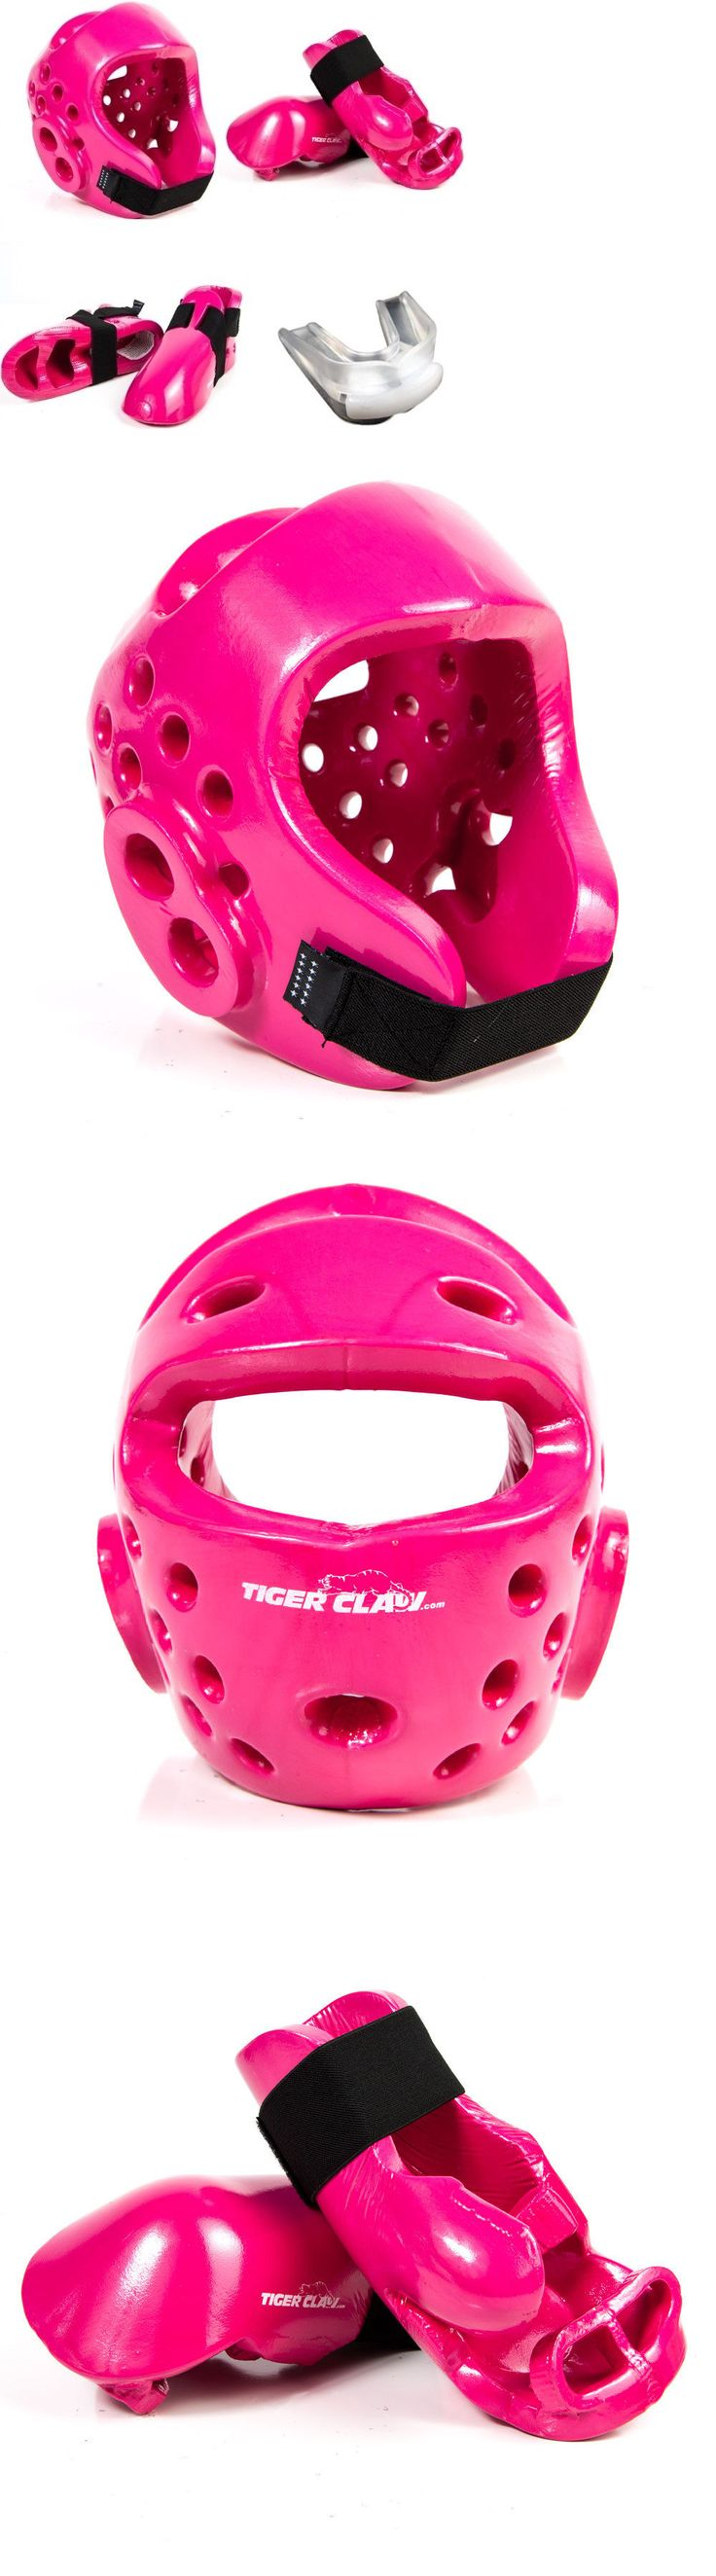 Other Combat Sport Protection 179783: Karate Tae Kwon Do Sparring Gear Set With Headgear Hand Foot Pads - Pink -> BUY IT NOW ONLY: $59.95 on eBay!